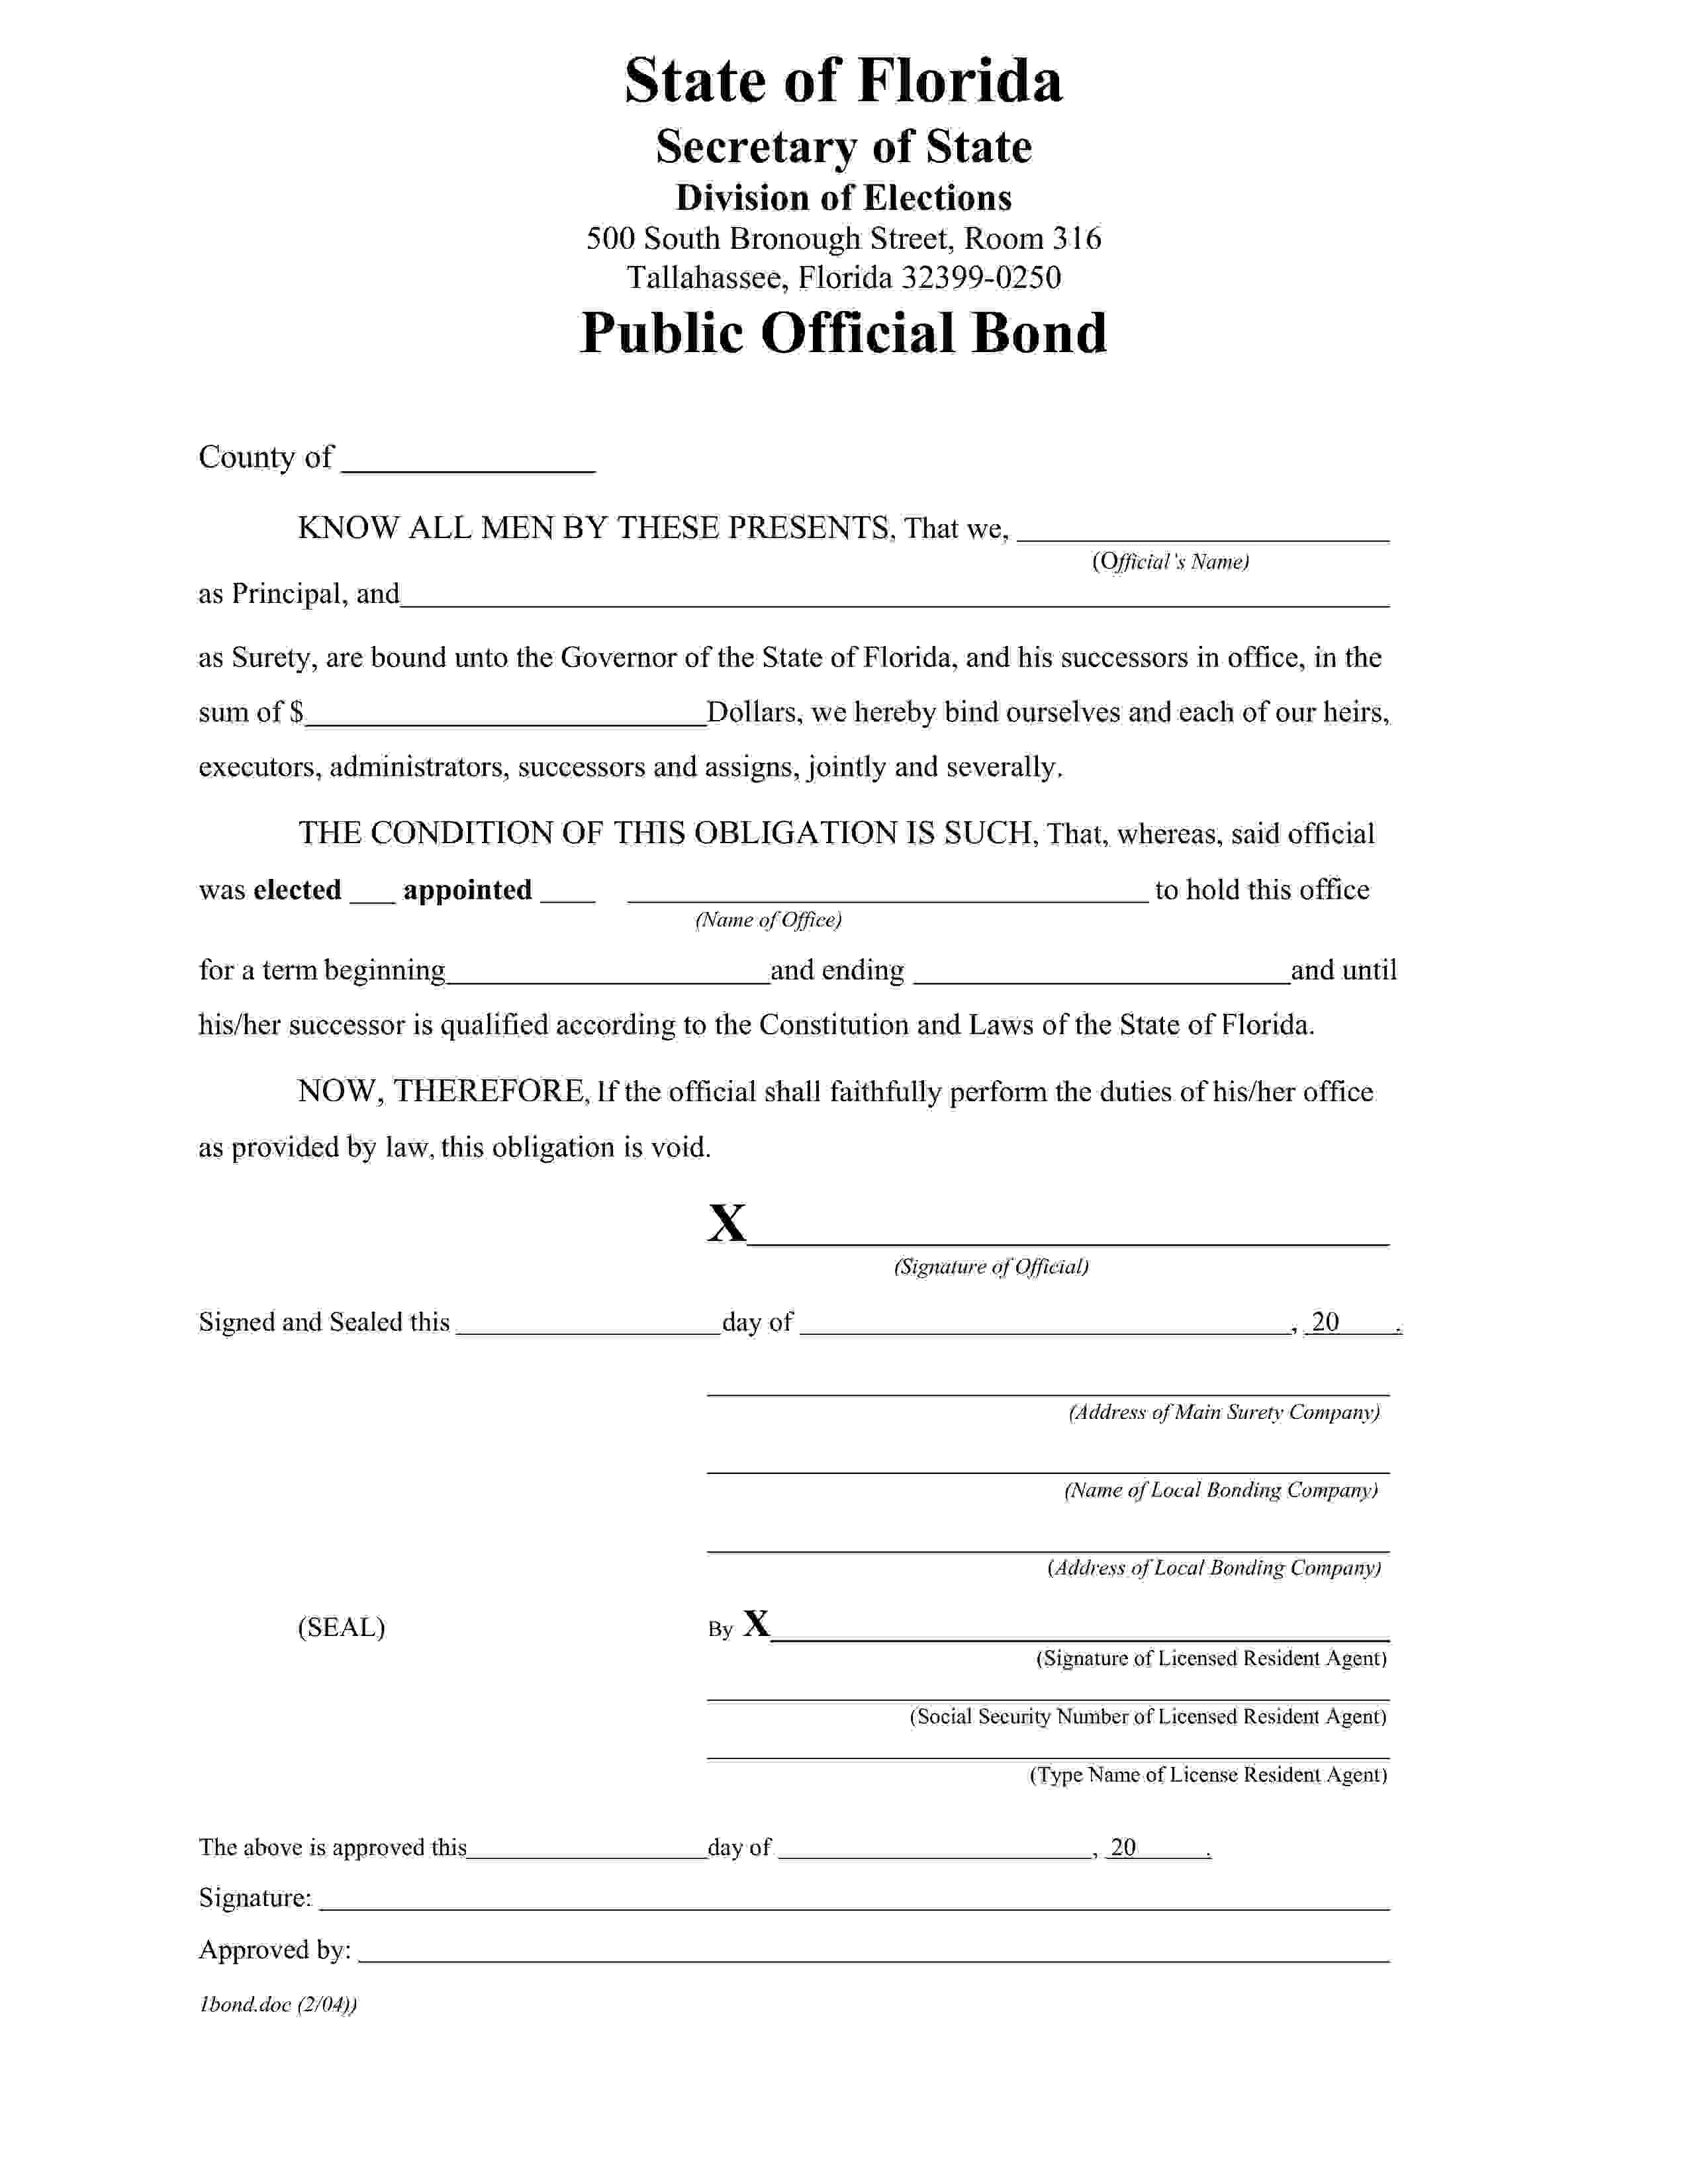 Florida Secretary Of State Public Official Position Other Than Treasurer or Tax Collector up to Bond sample image